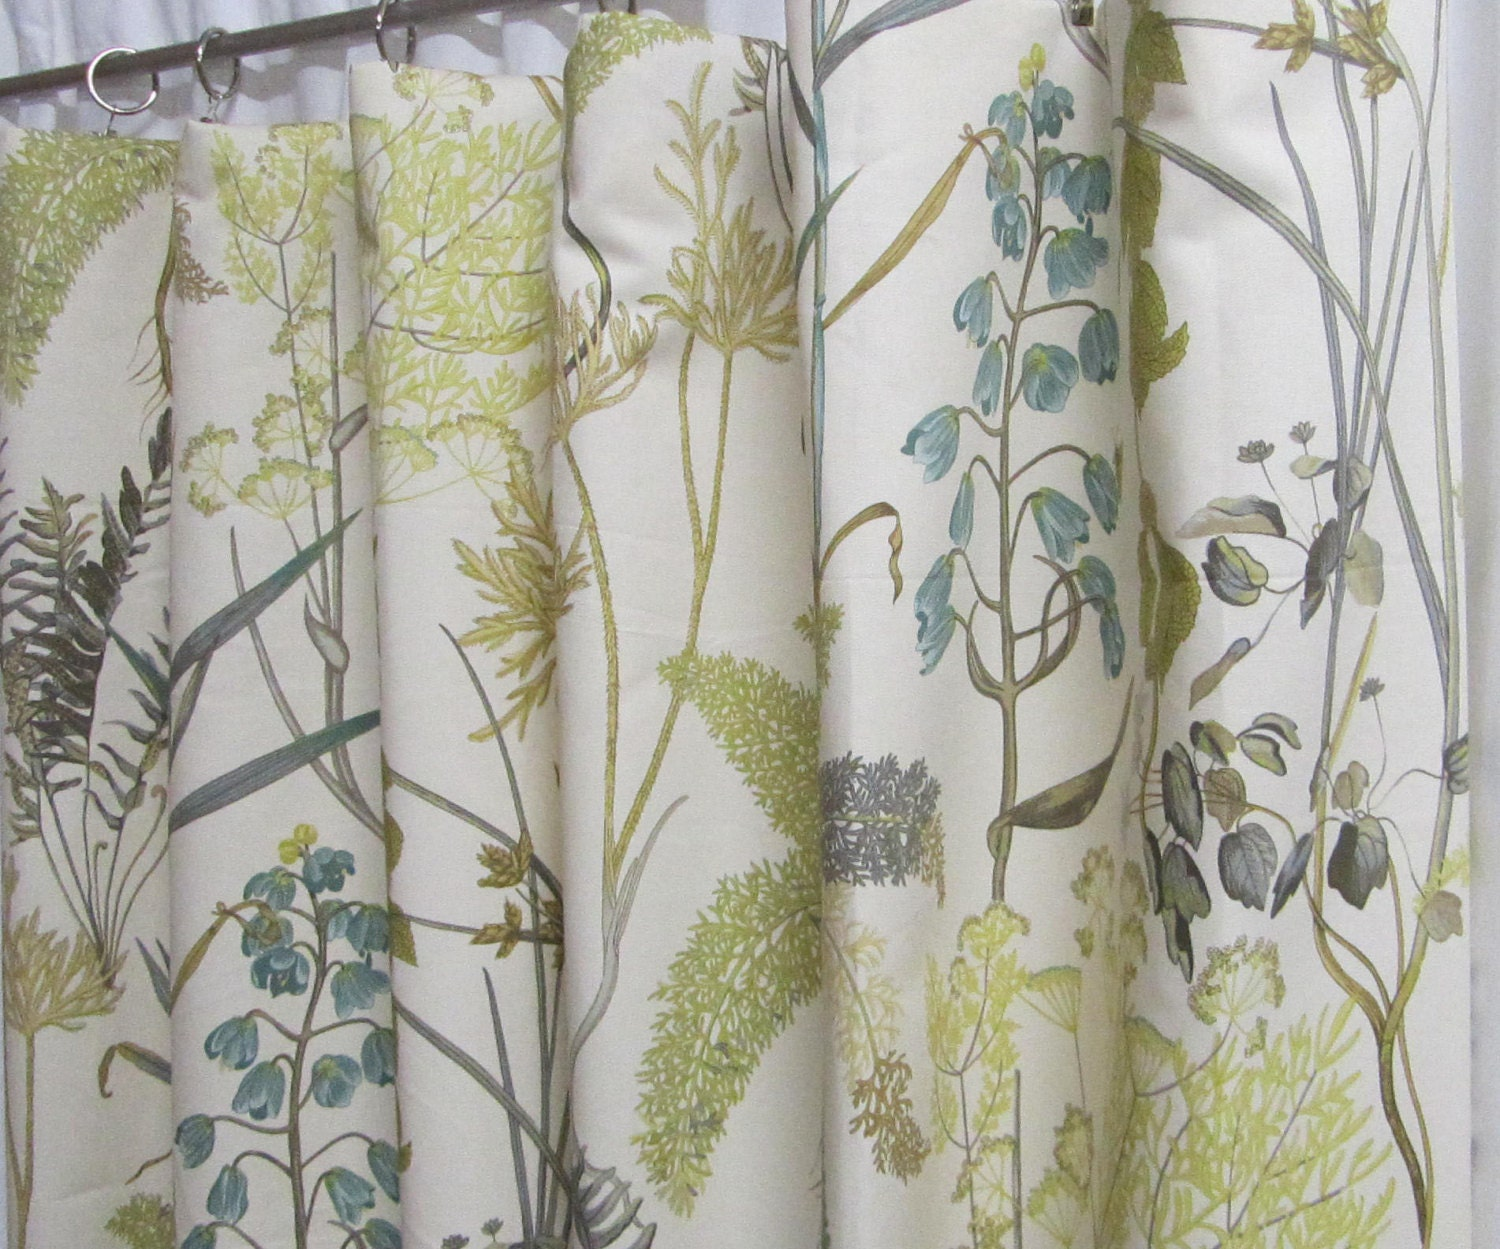 Neutral Window Curtains Botanical Inspired by asmushomeinteriors